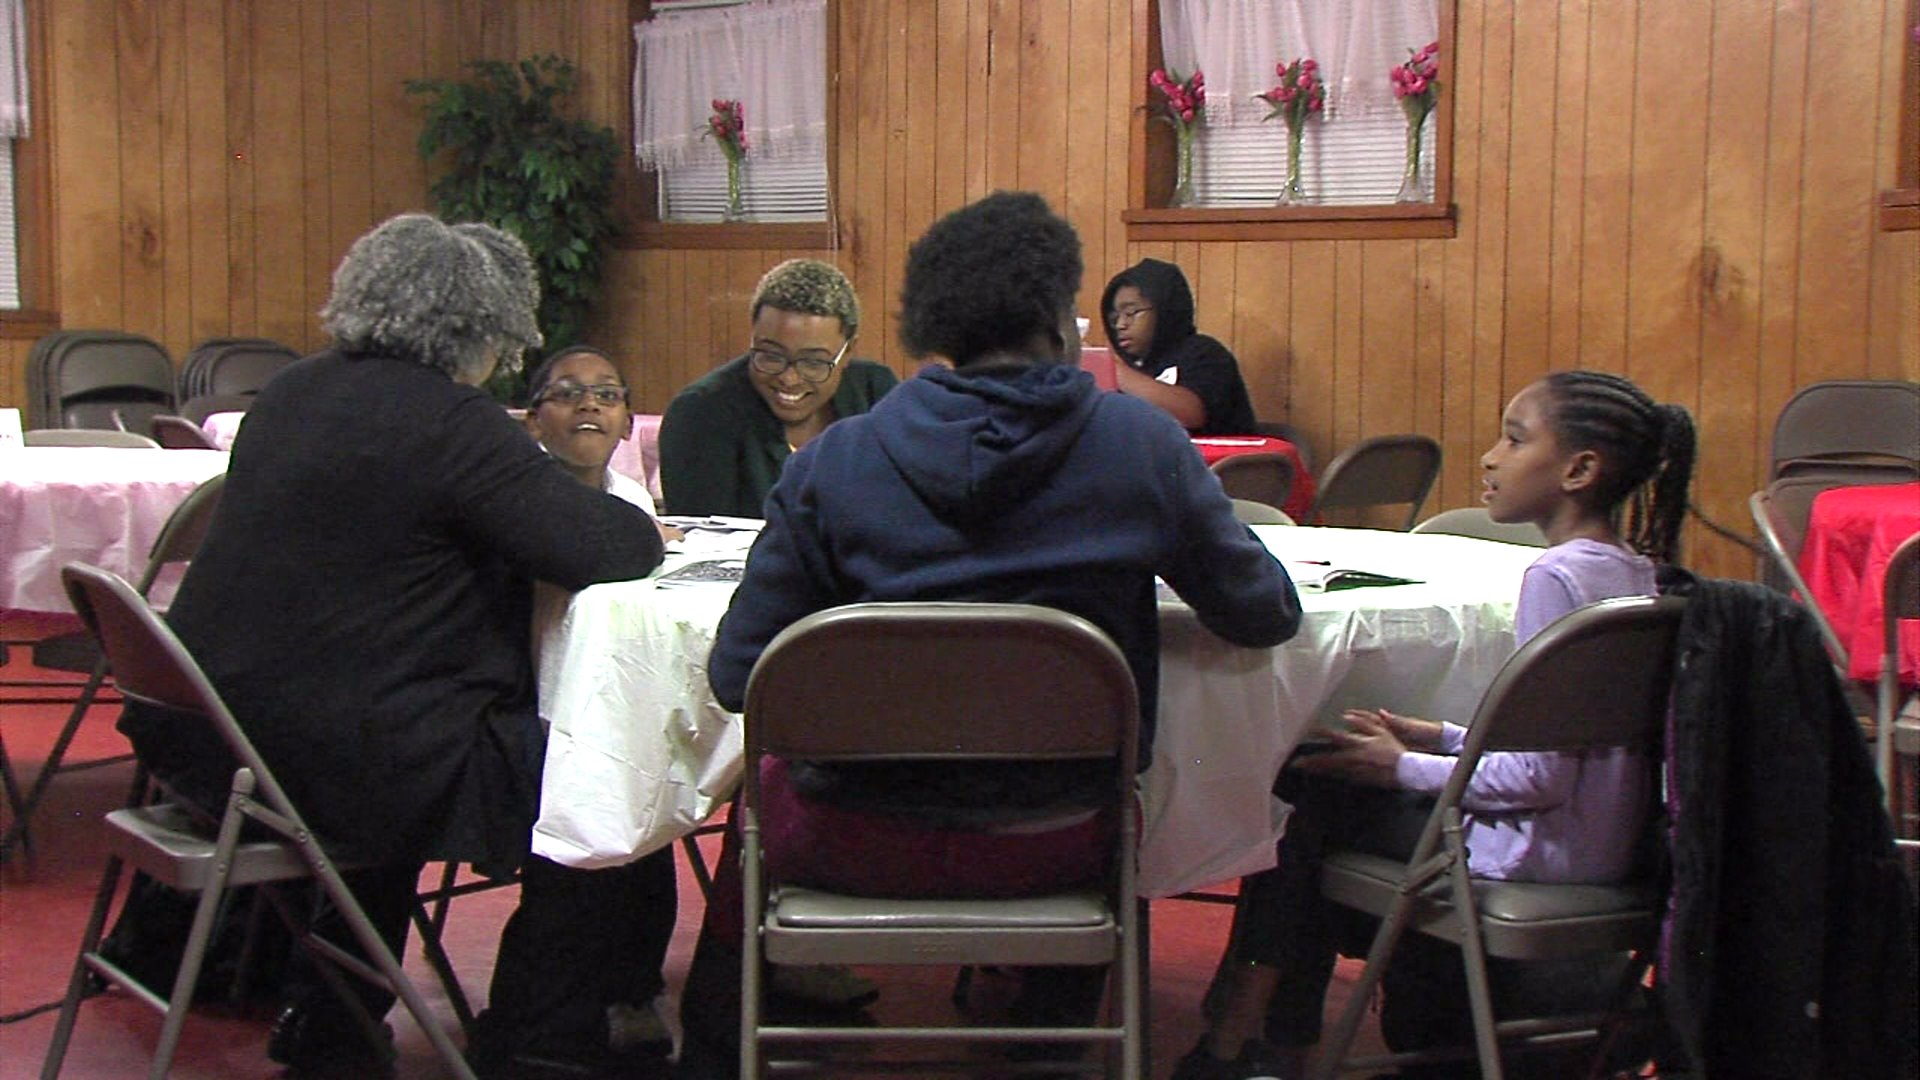 High Point church provides study hall program for kids